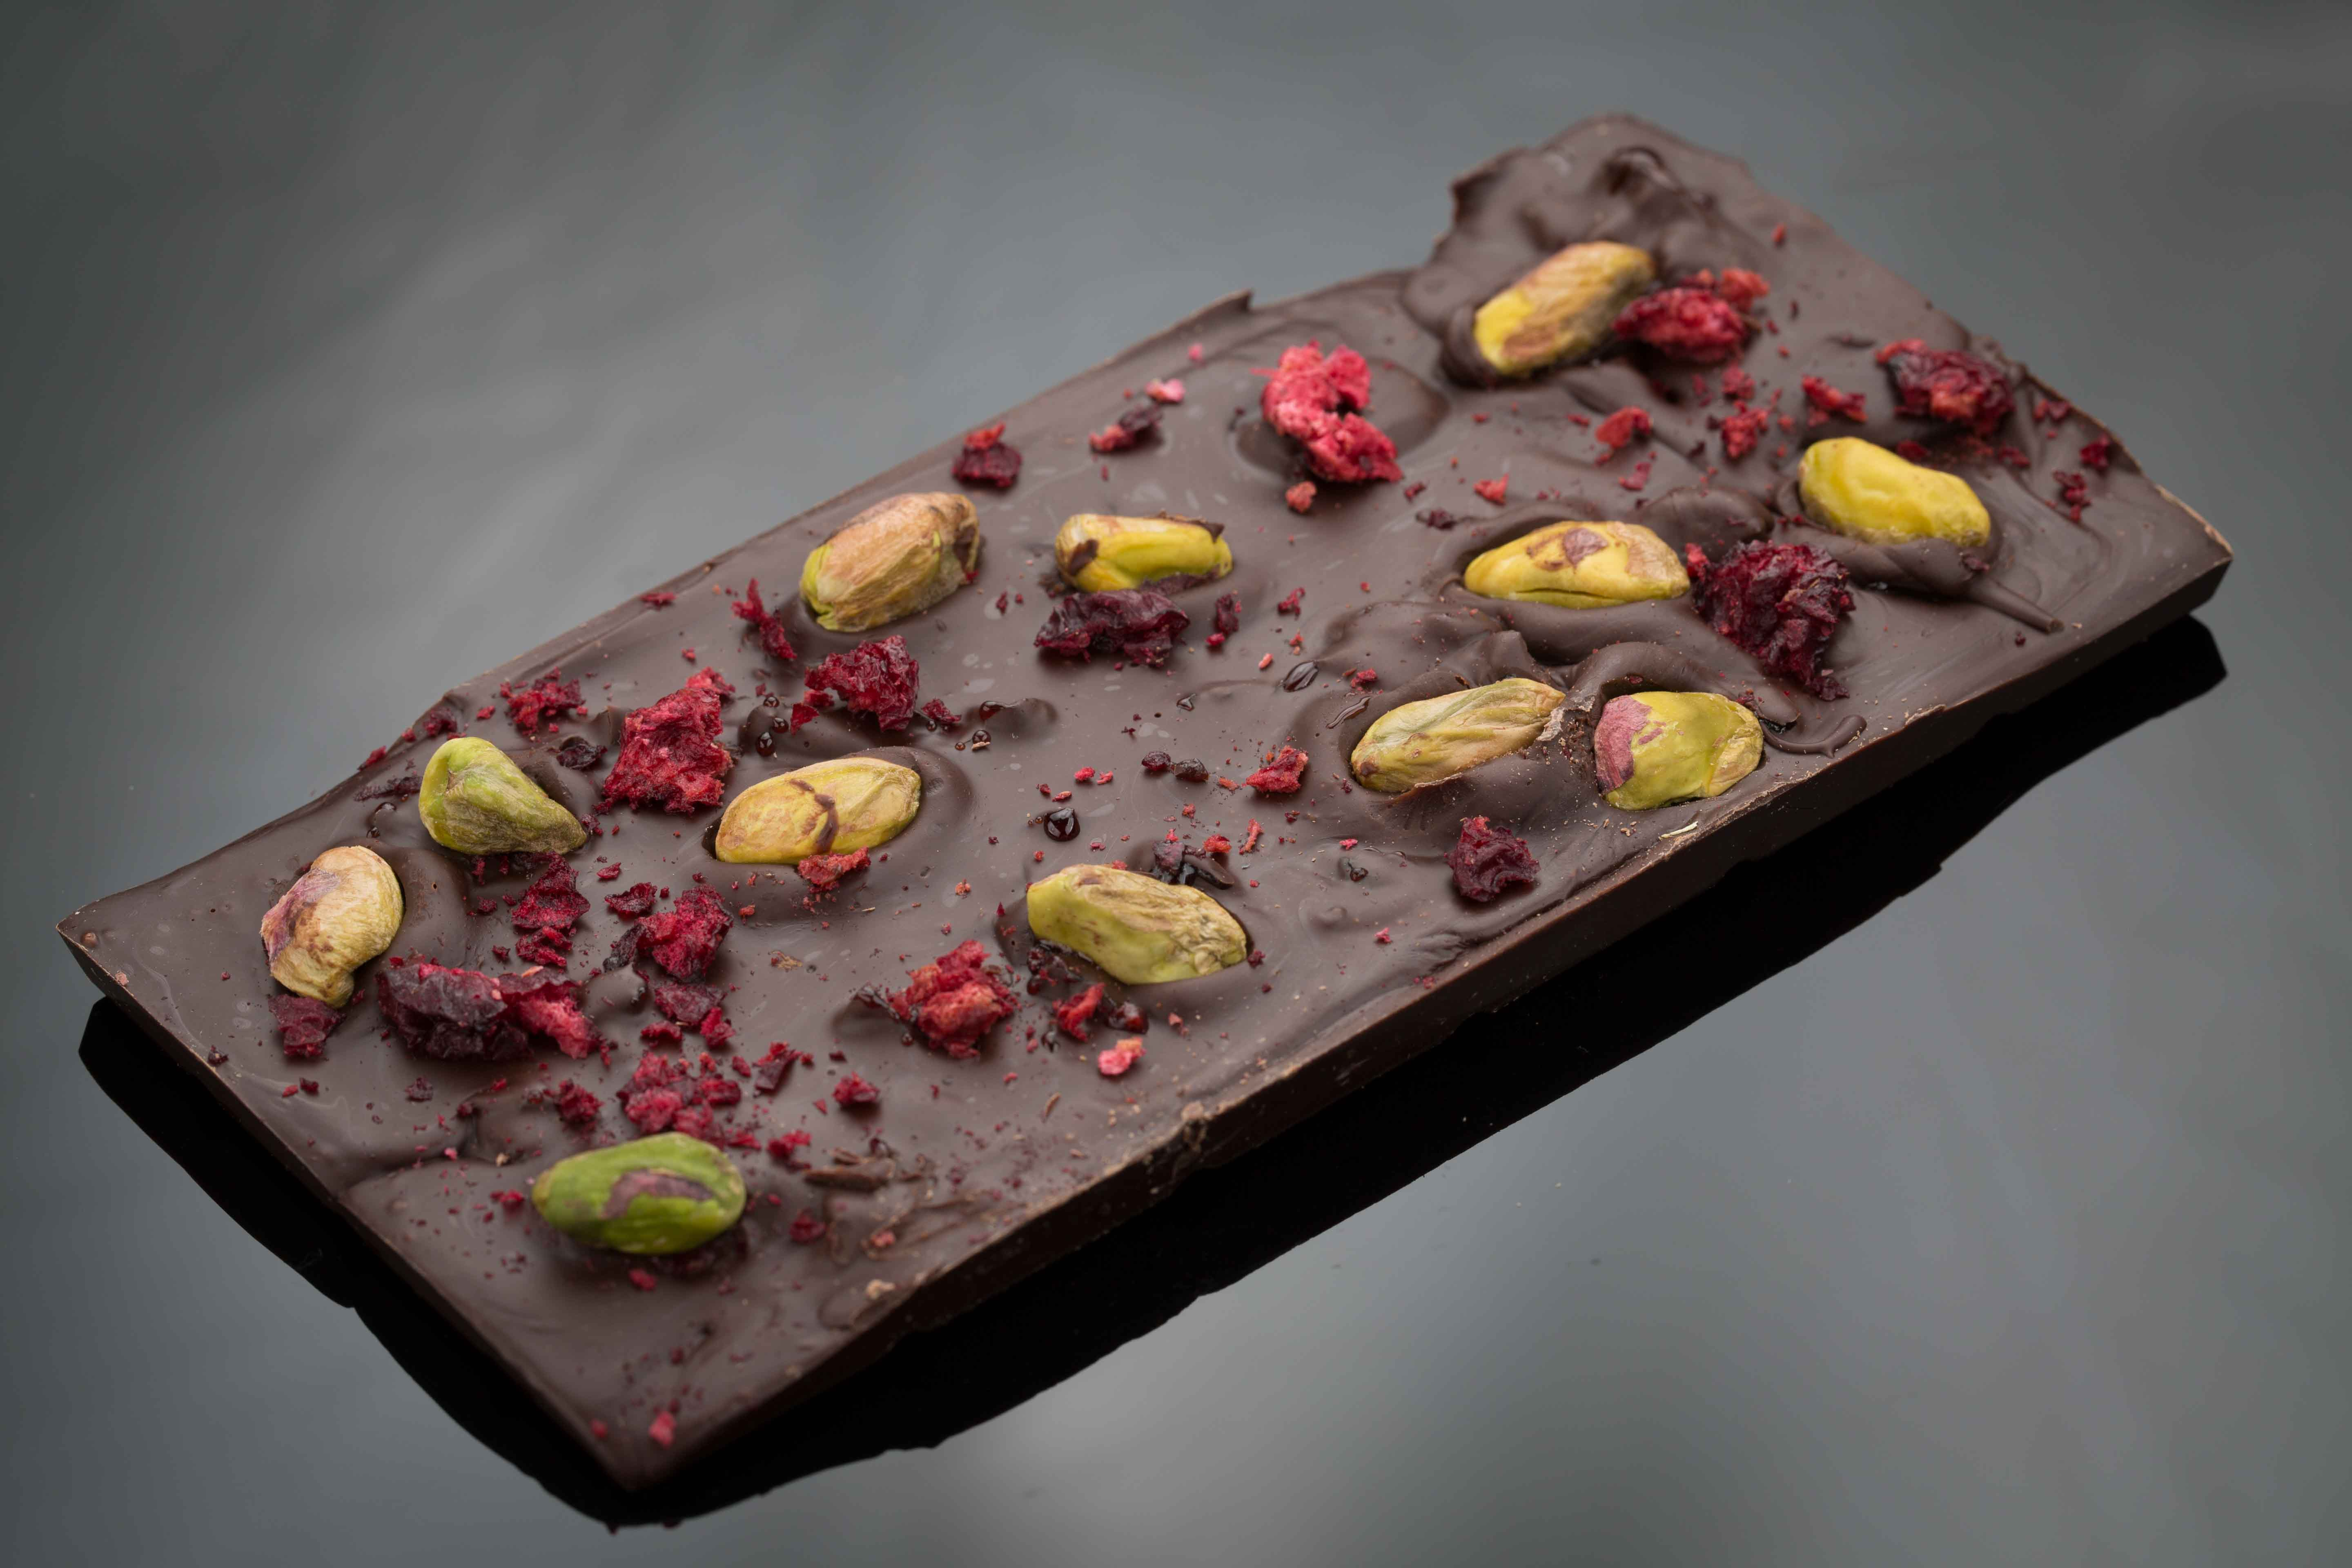 Chocolate Gifts, Pistachios Dark Chocolate - The Chocolate Room